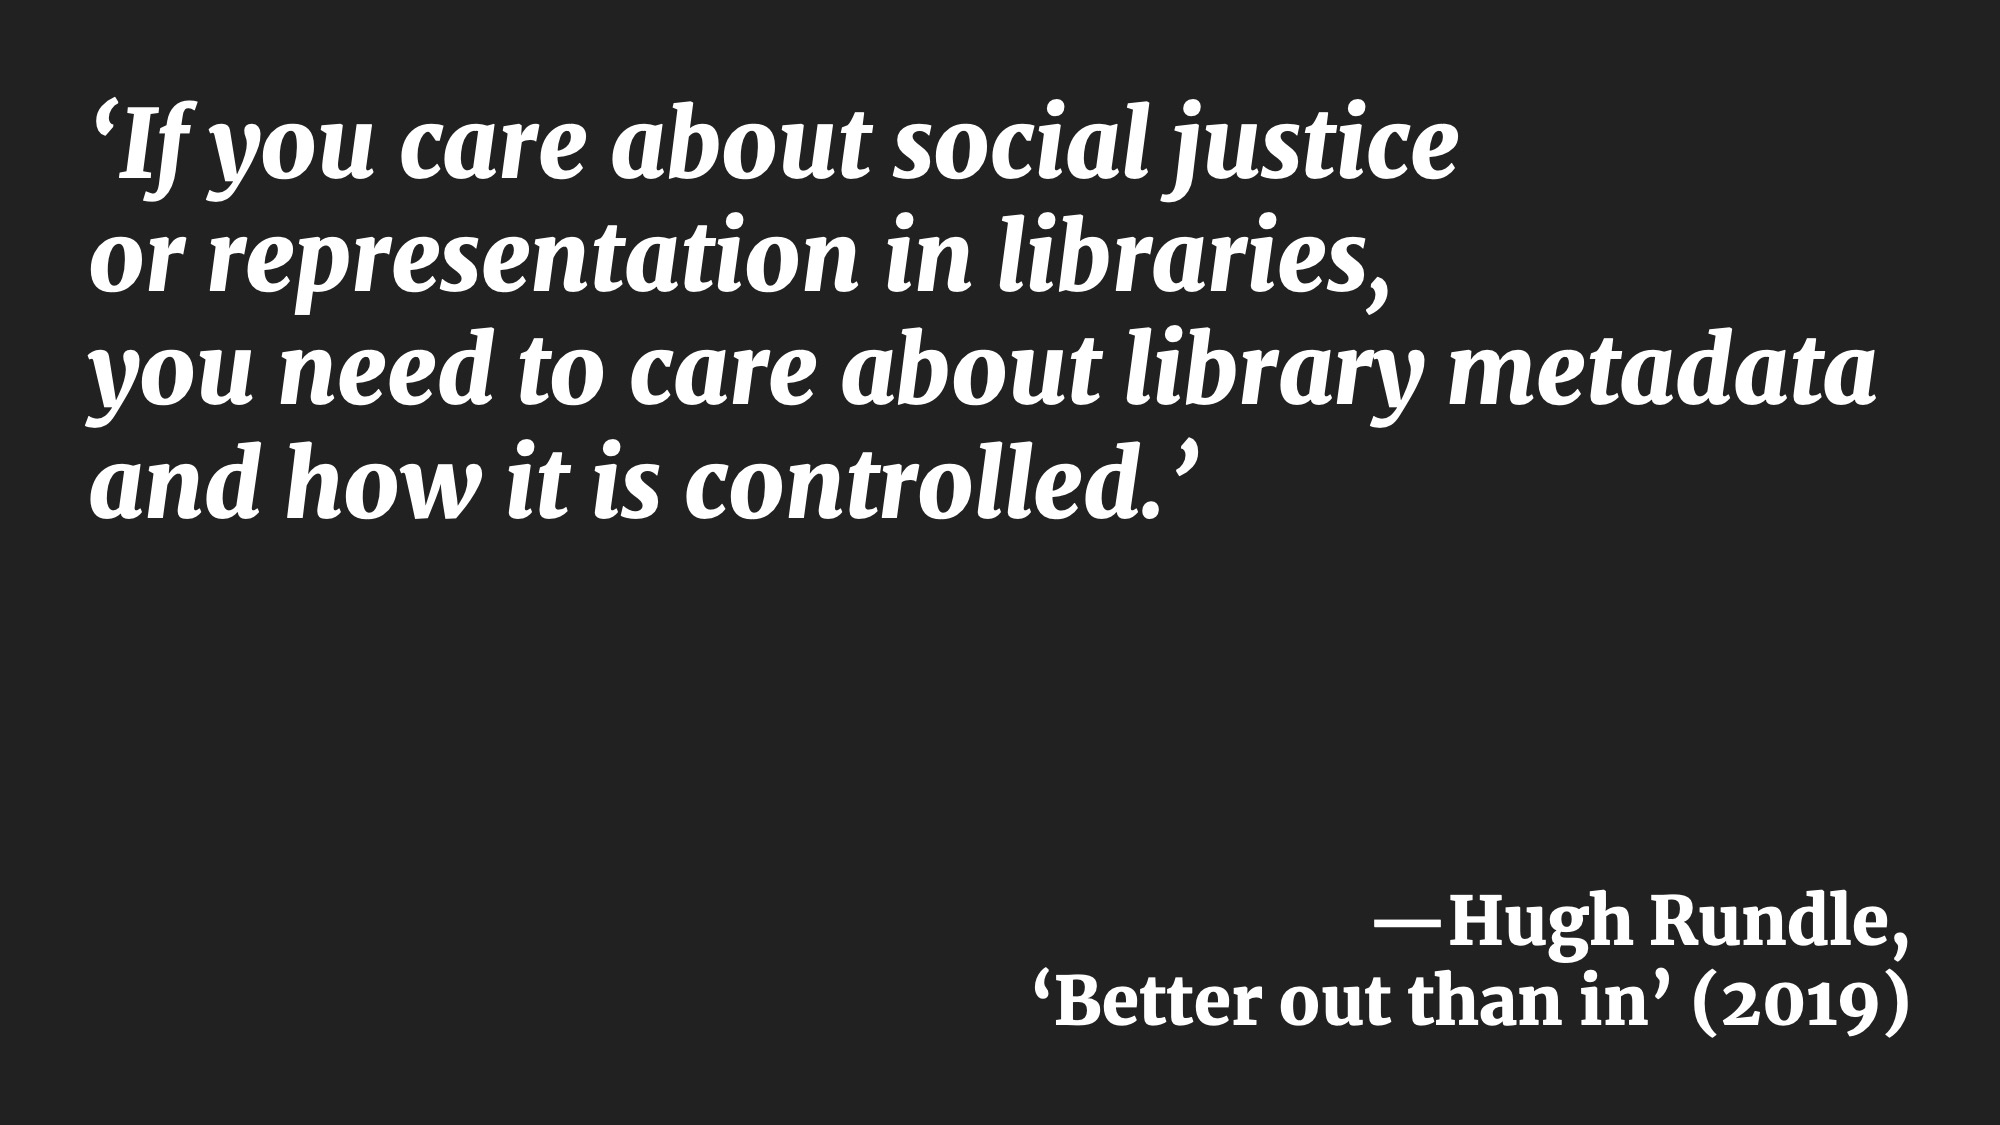 'If you care about social justice or representation in libraries, you need to care about library metadata and how it is controlled.' —Hugh Rundle, 'Better out than in' (2019)